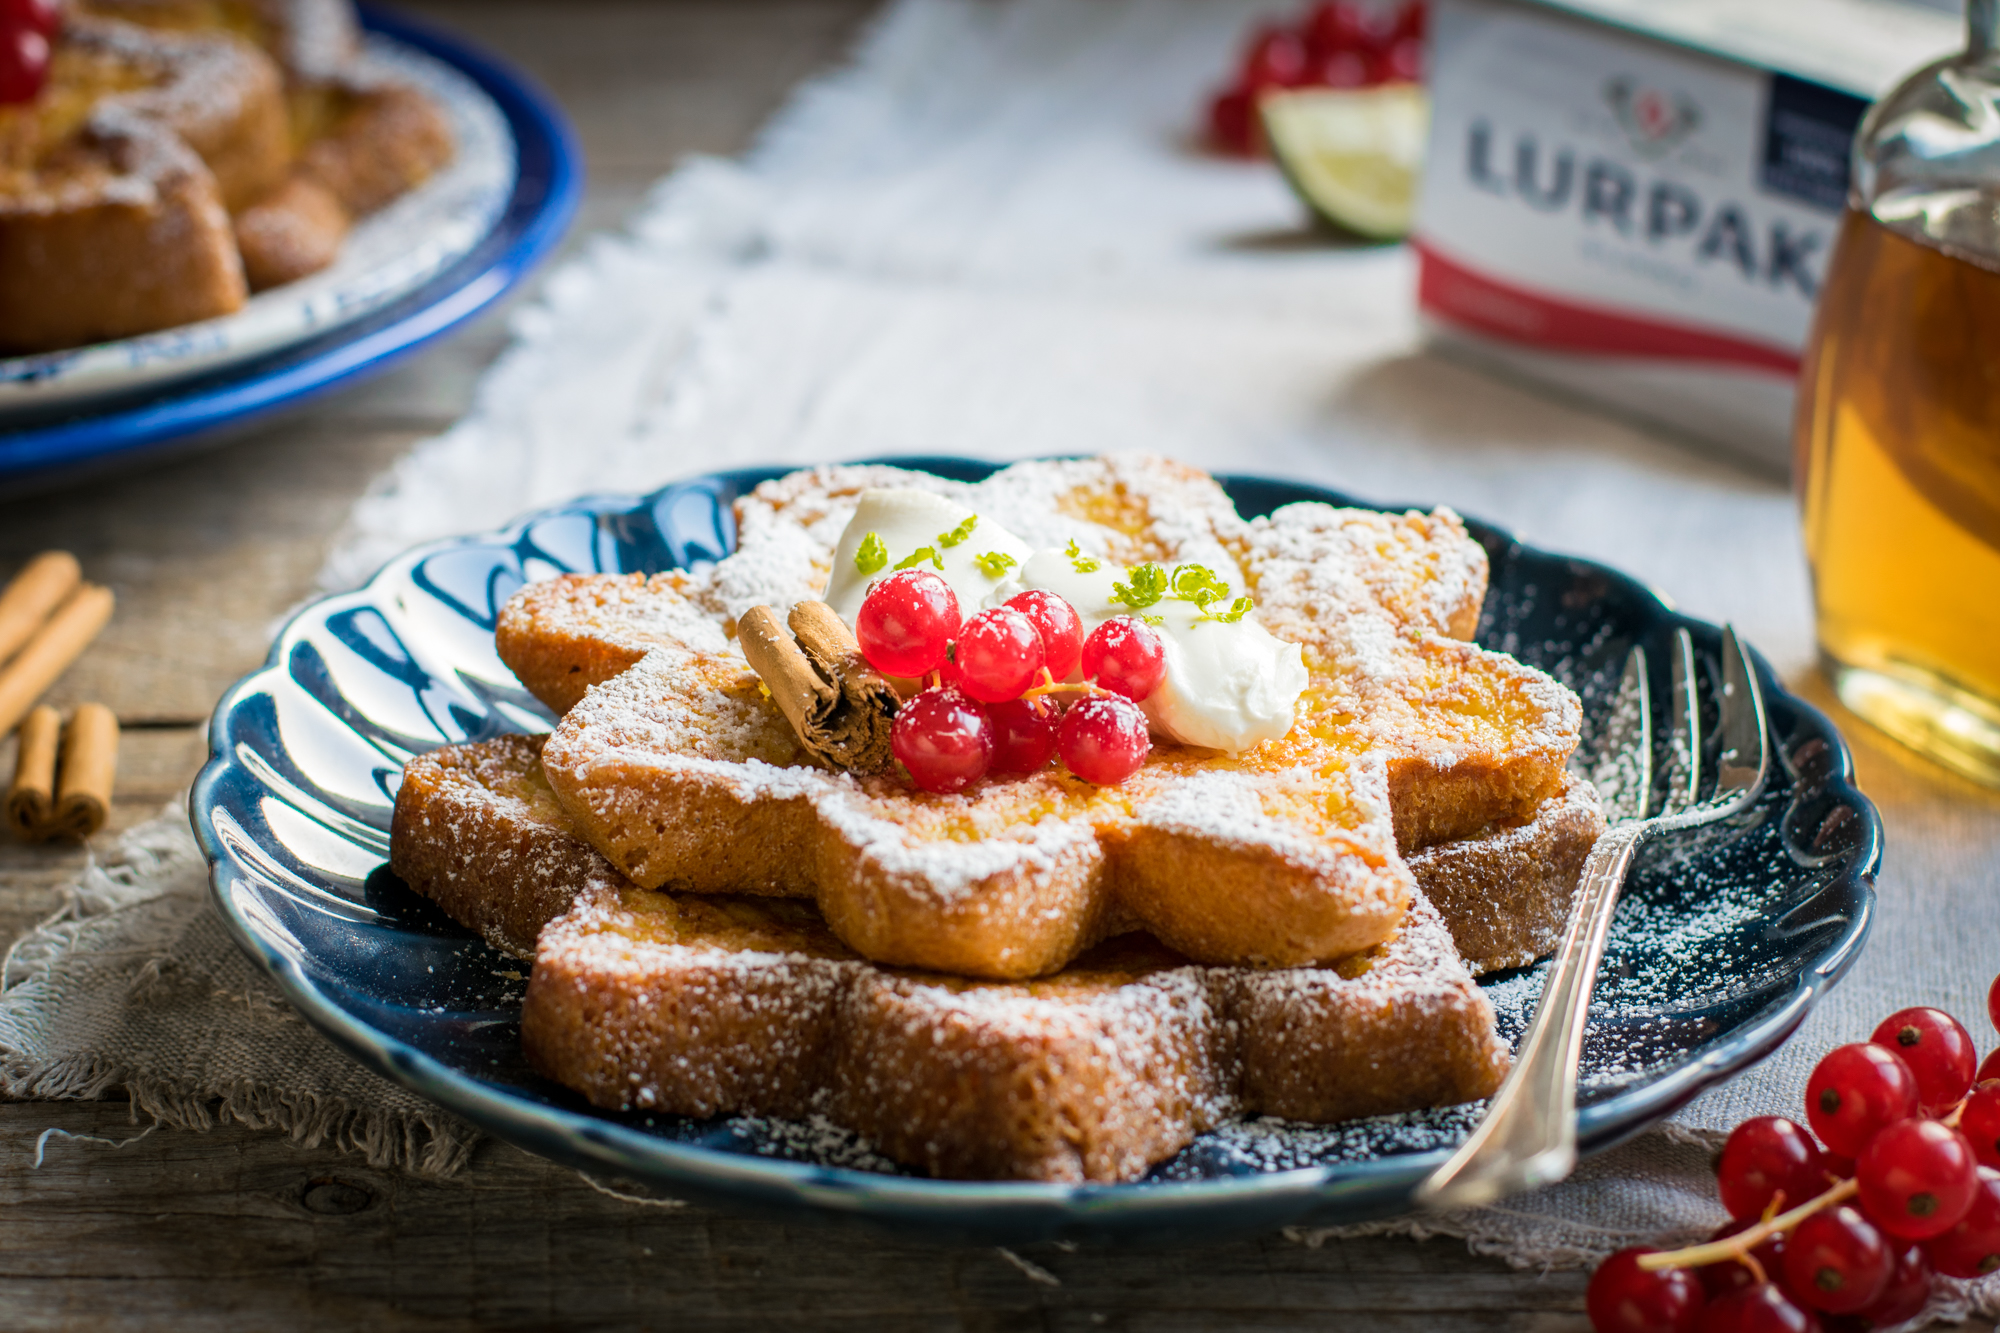 french toast al pandoro